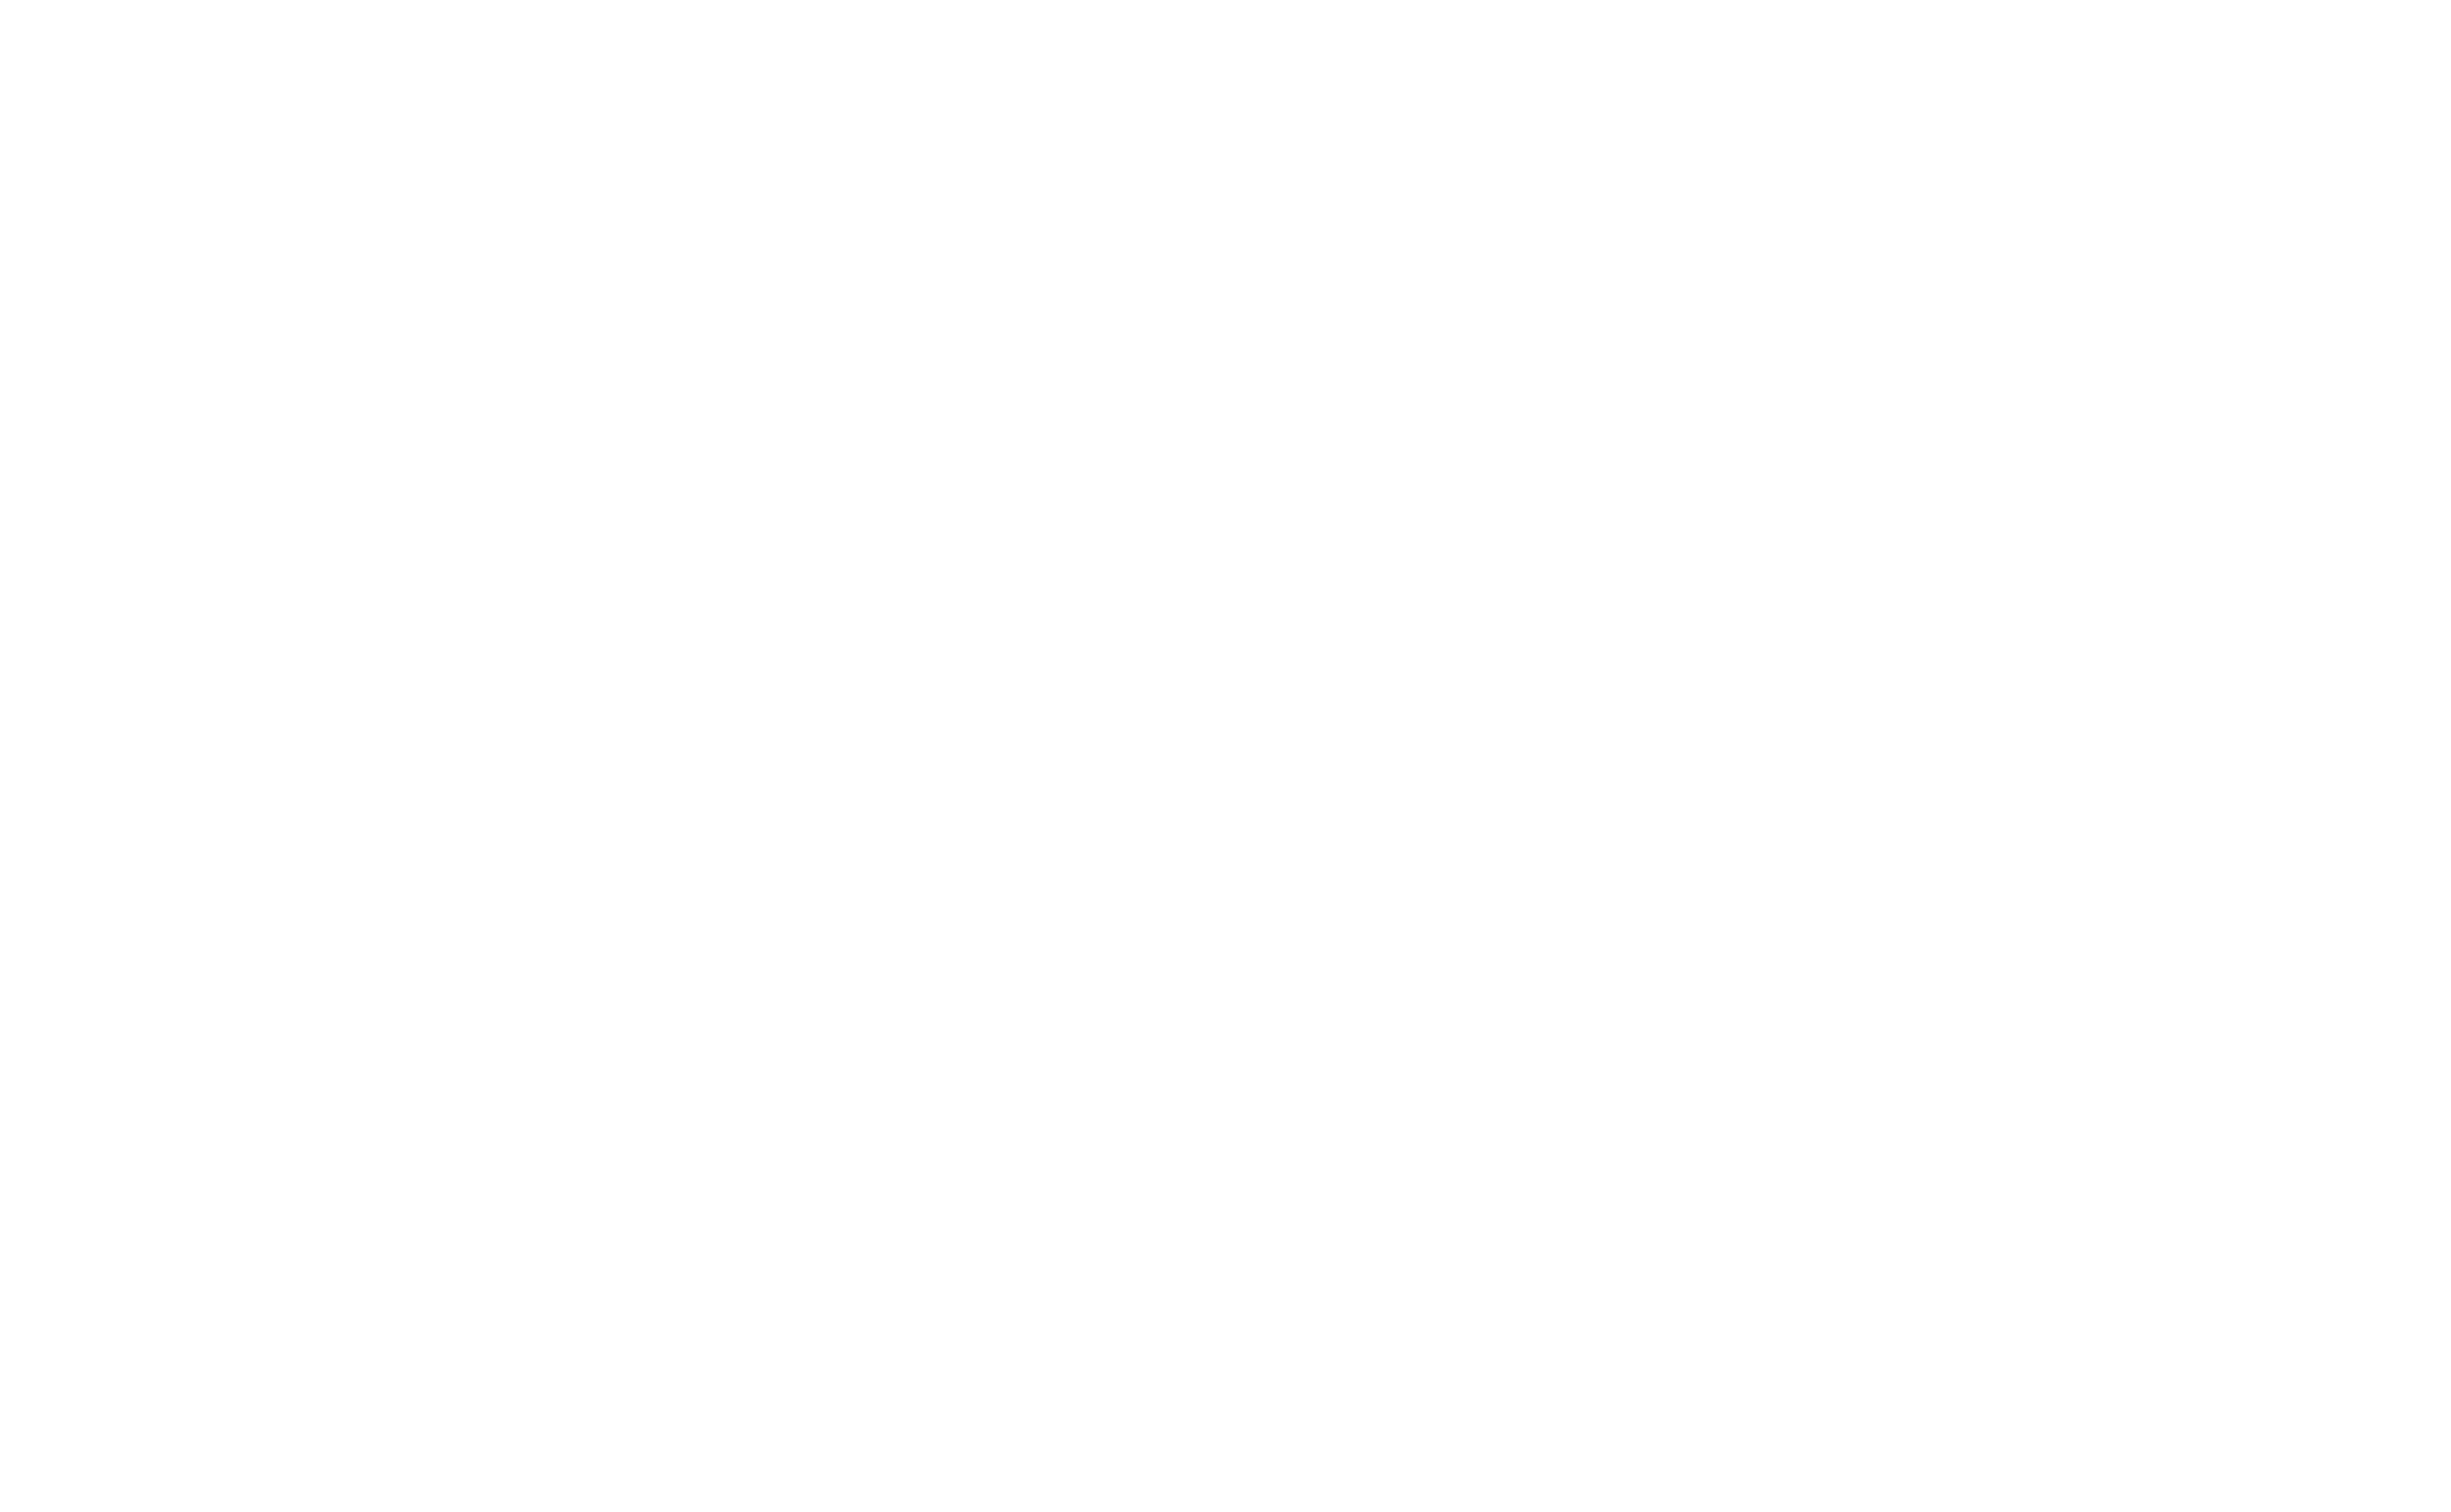 Dust in Mind